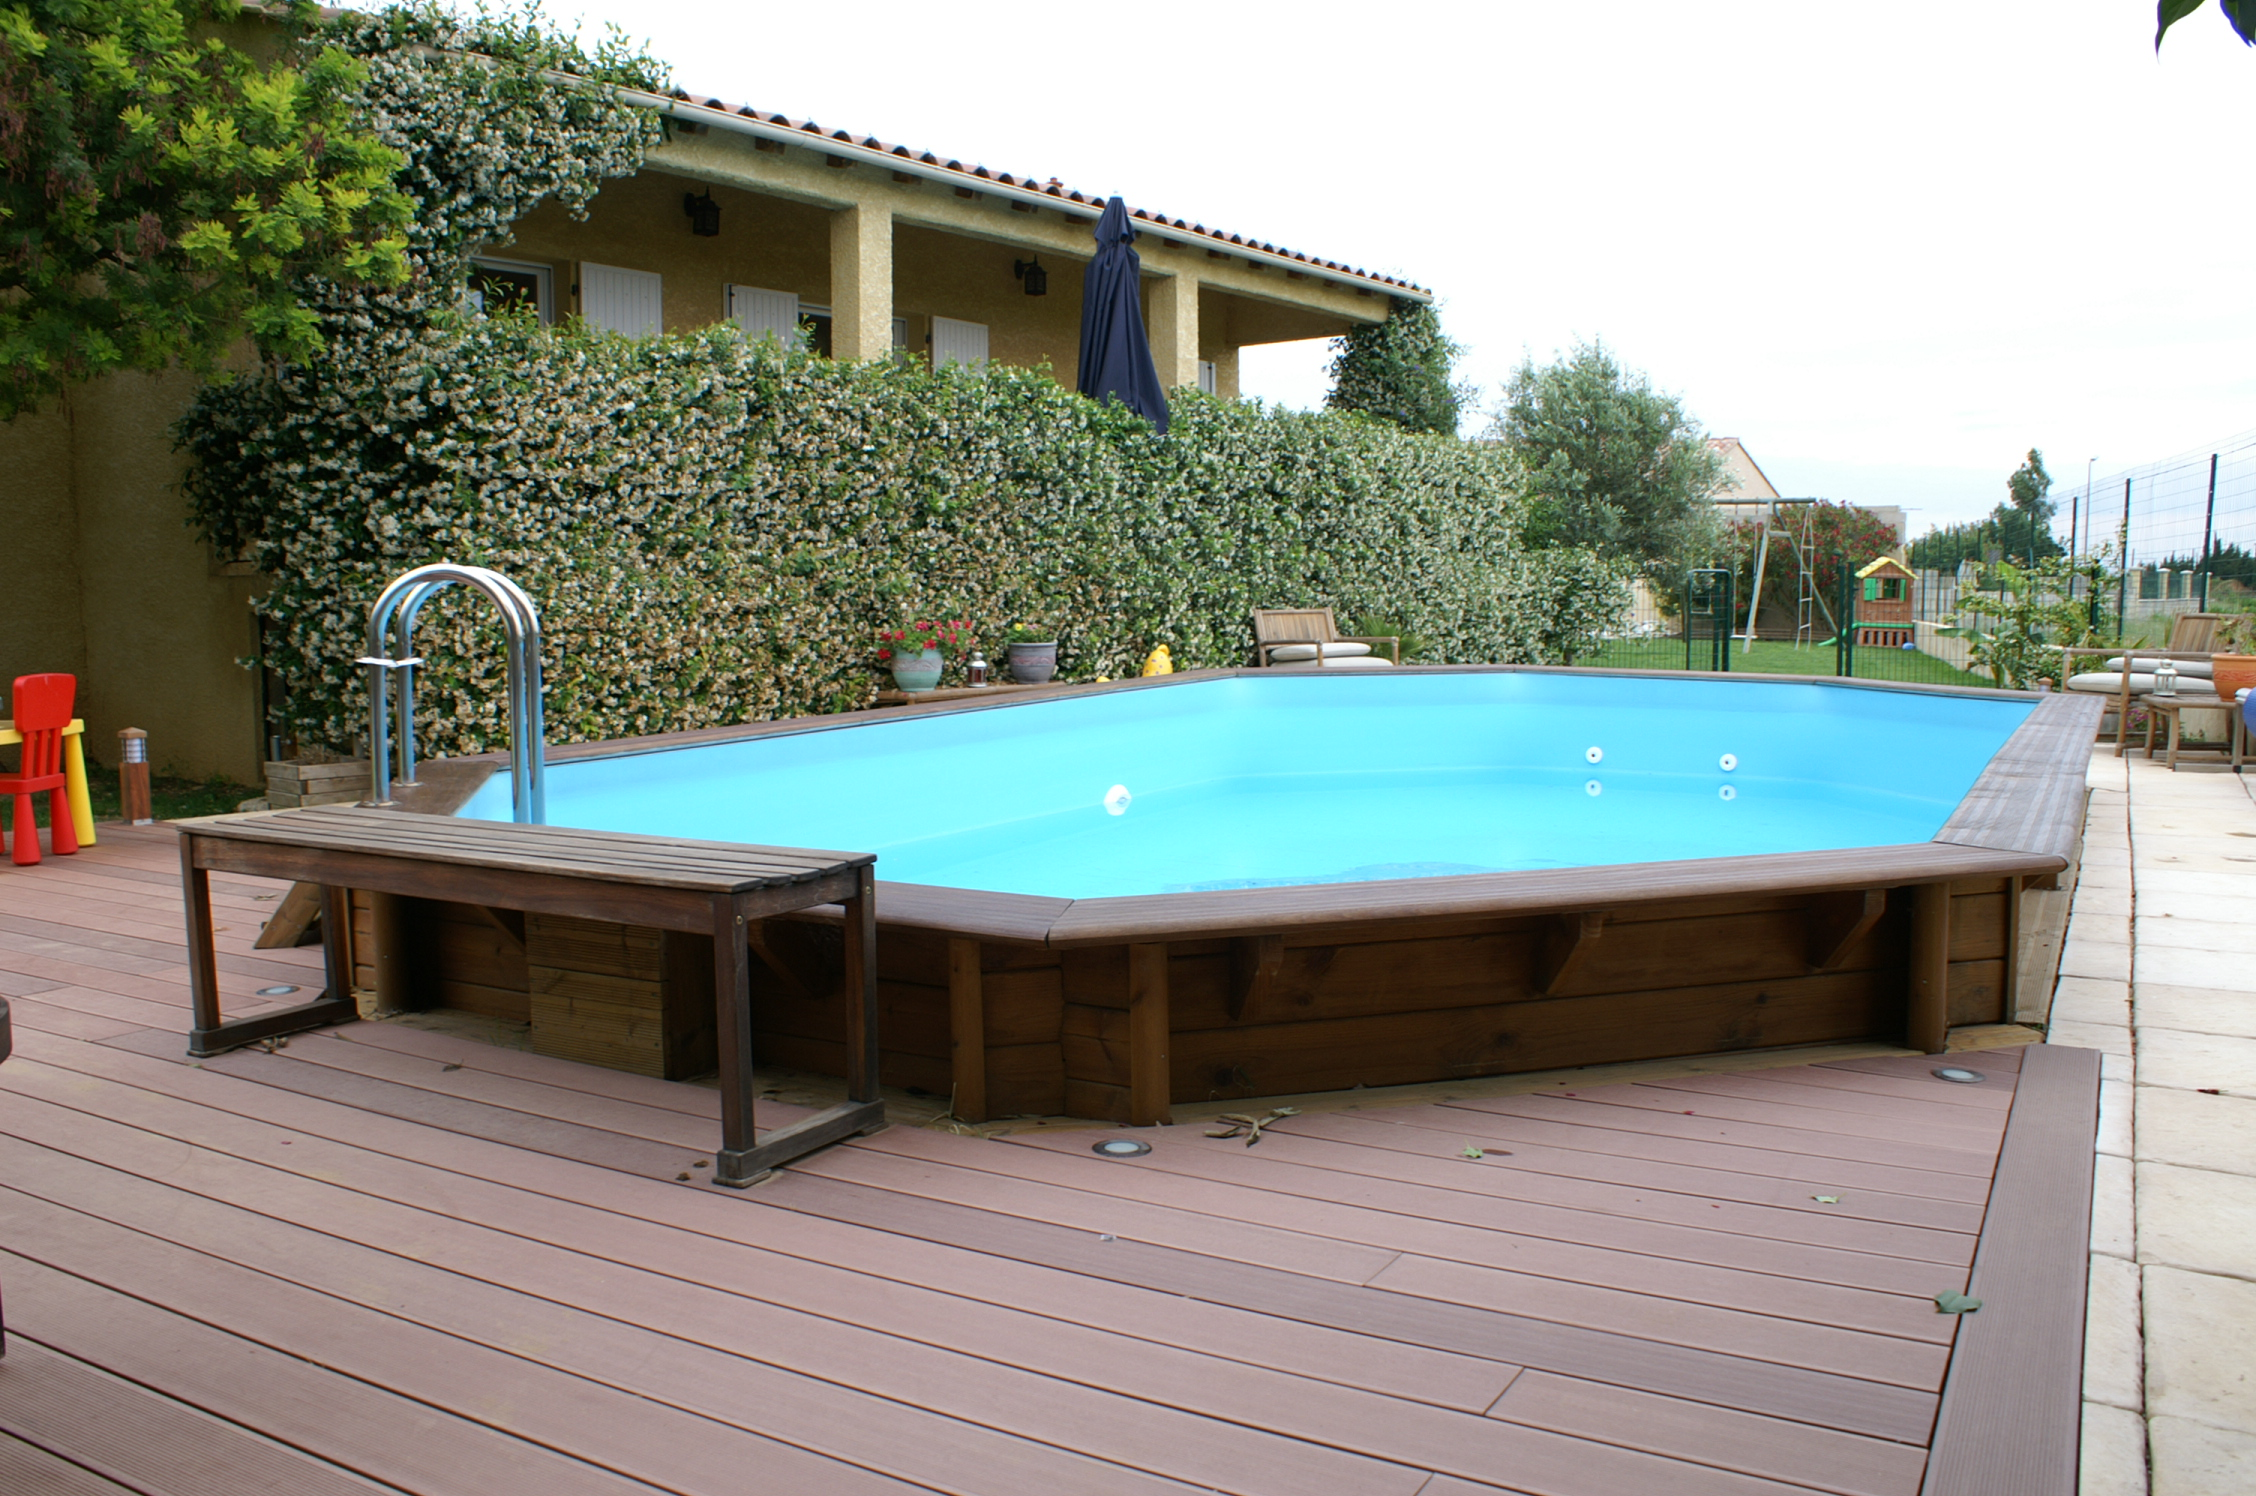 Construction piscines nimes gepad piscines et spa 30000 for Piscine hors sol albi